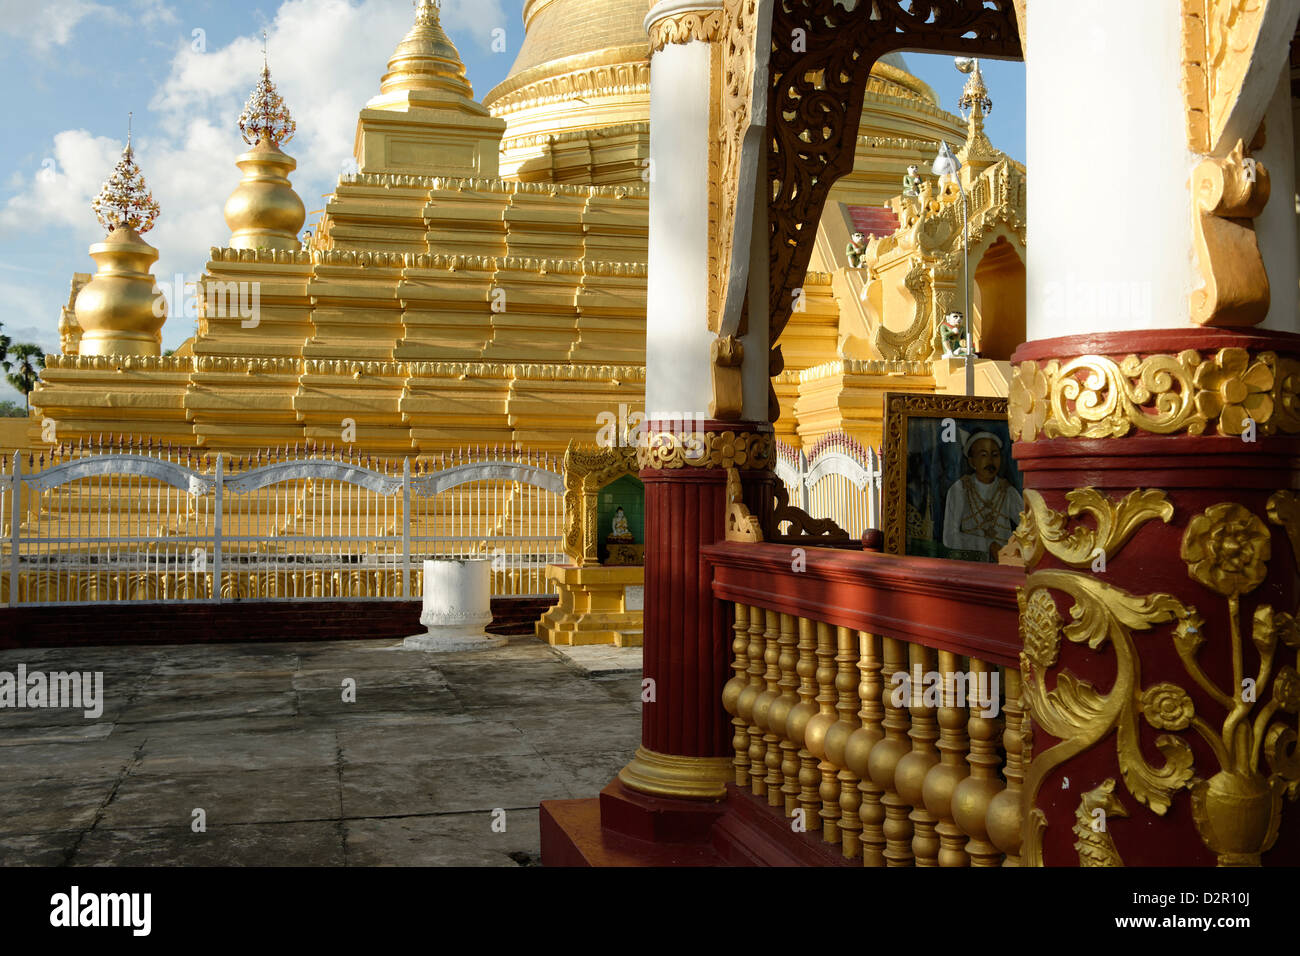 The Kuthodaw Pagoda, Mandalay city, Mandalay Division, Republic of the Union of Myanmar (Burma), Asia - Stock Image